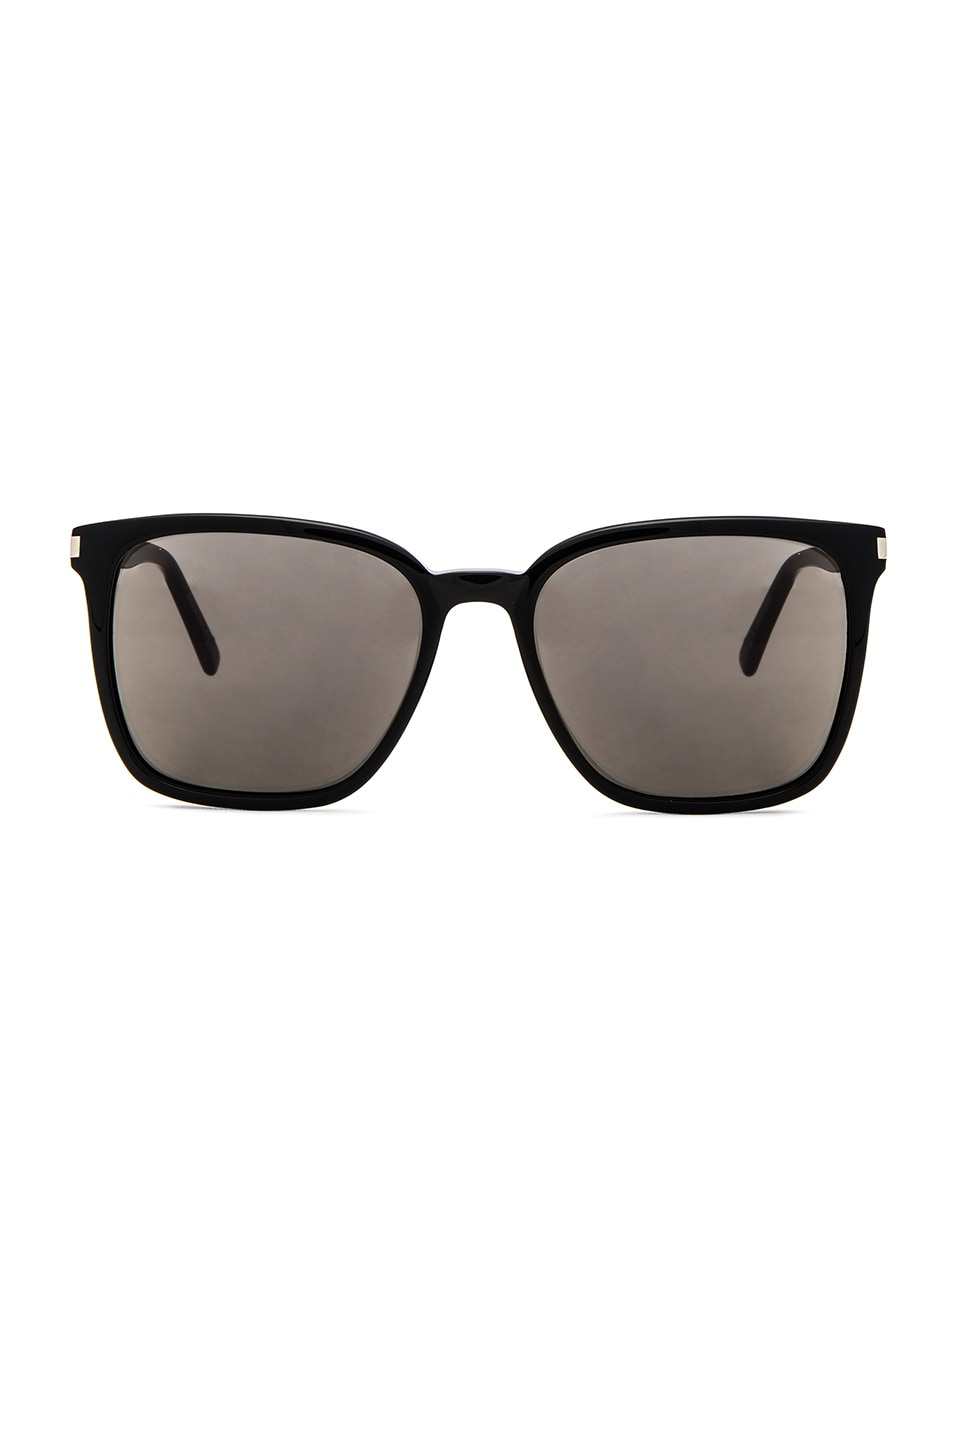 Image 1 of Saint Laurent SL 93 Sunglasses in Black & Smoke